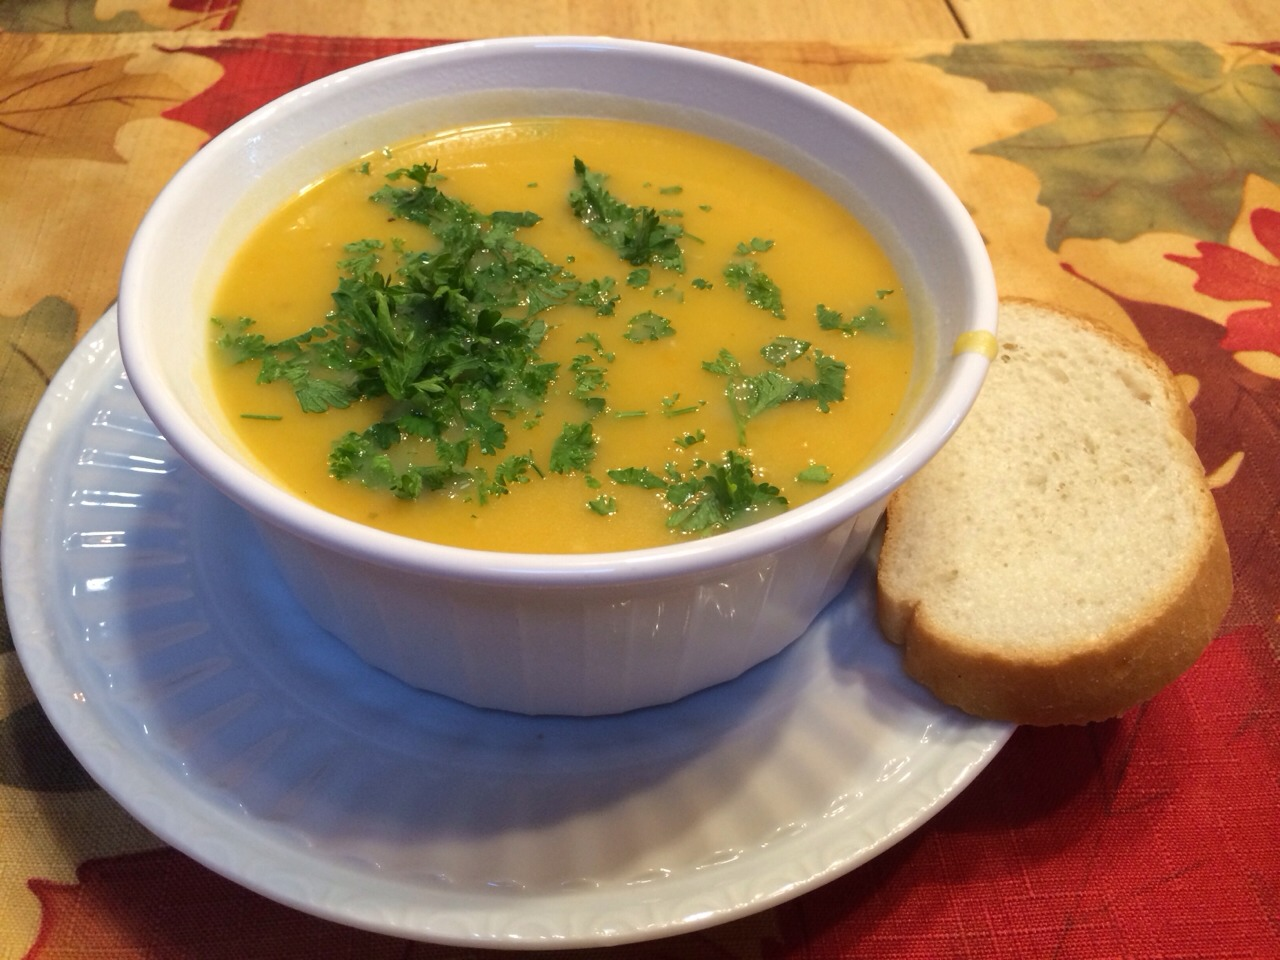 Butternut squash soup (my picture of the soup, this is how it should look if you follow the recipe)